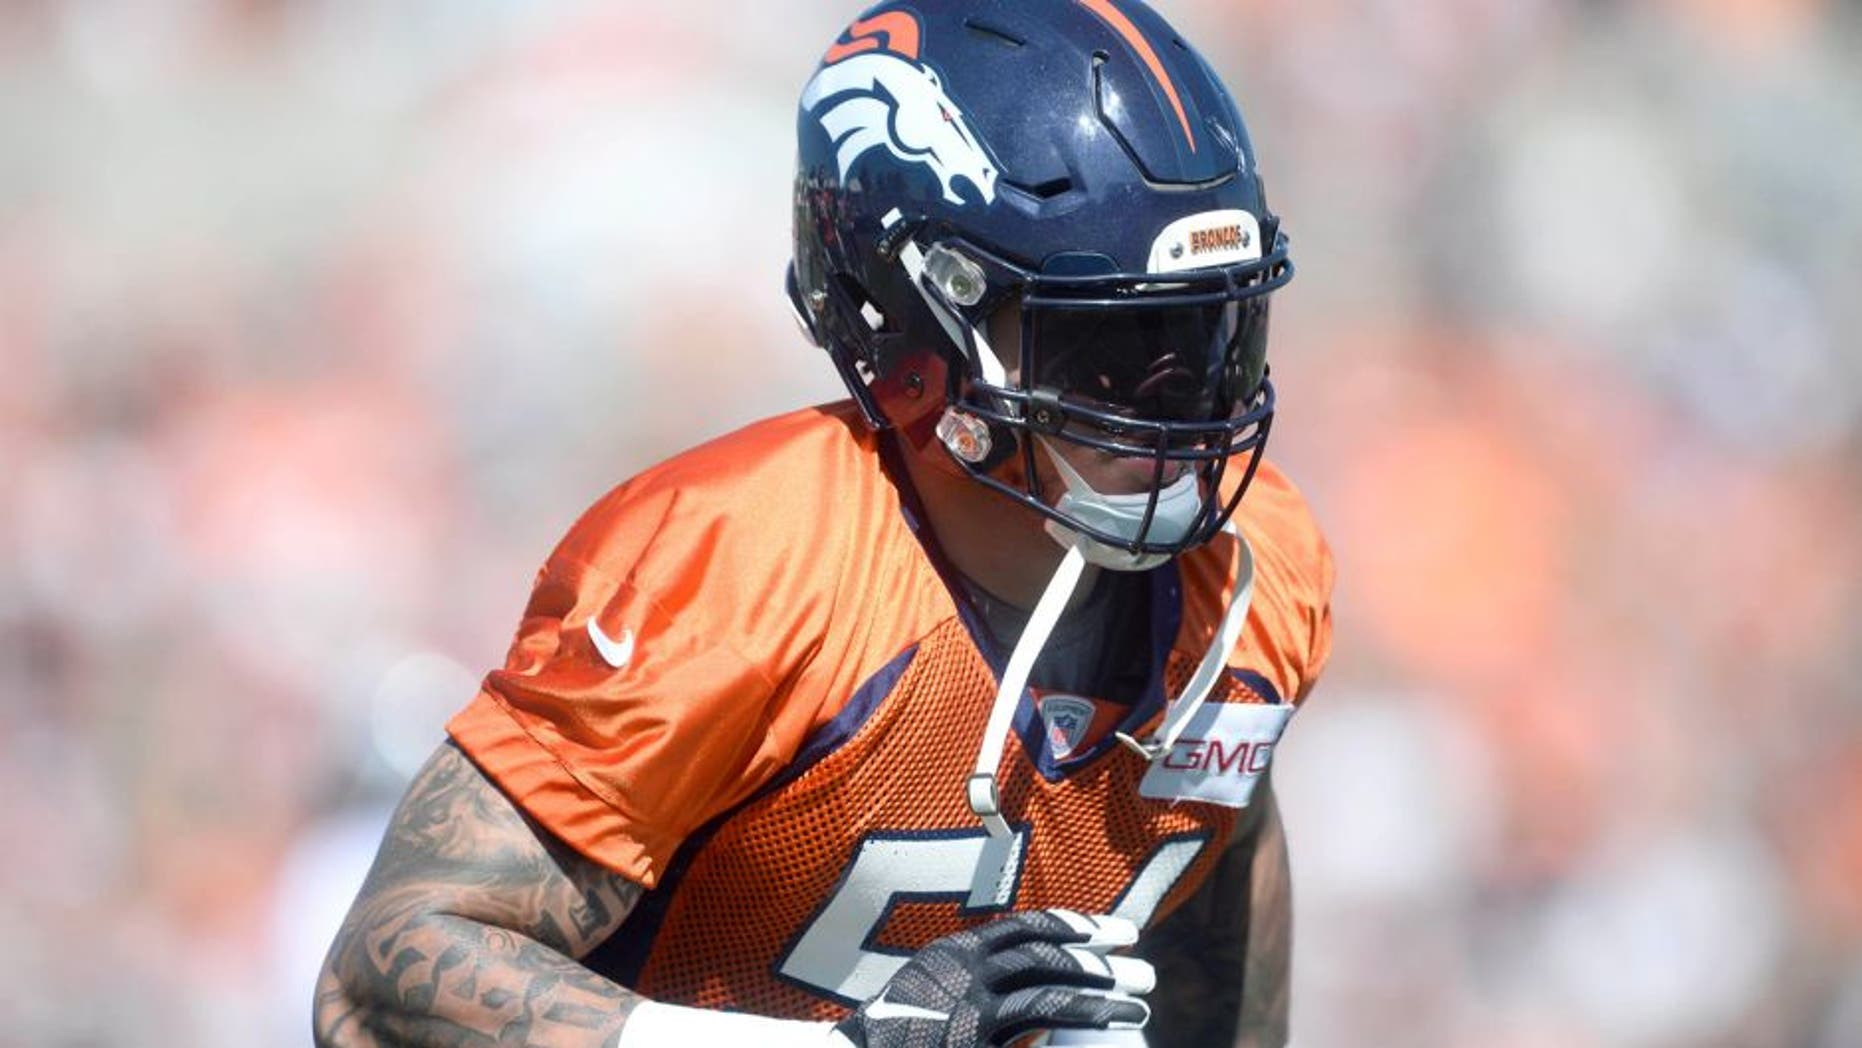 Jul 31, 2015; Englewood, CO, USA; Denver Broncos linebacker Shane Ray (56) during training camp activities at the UCHealth Training Center. Mandatory Credit: Ron Chenoy-USA TODAY Sports